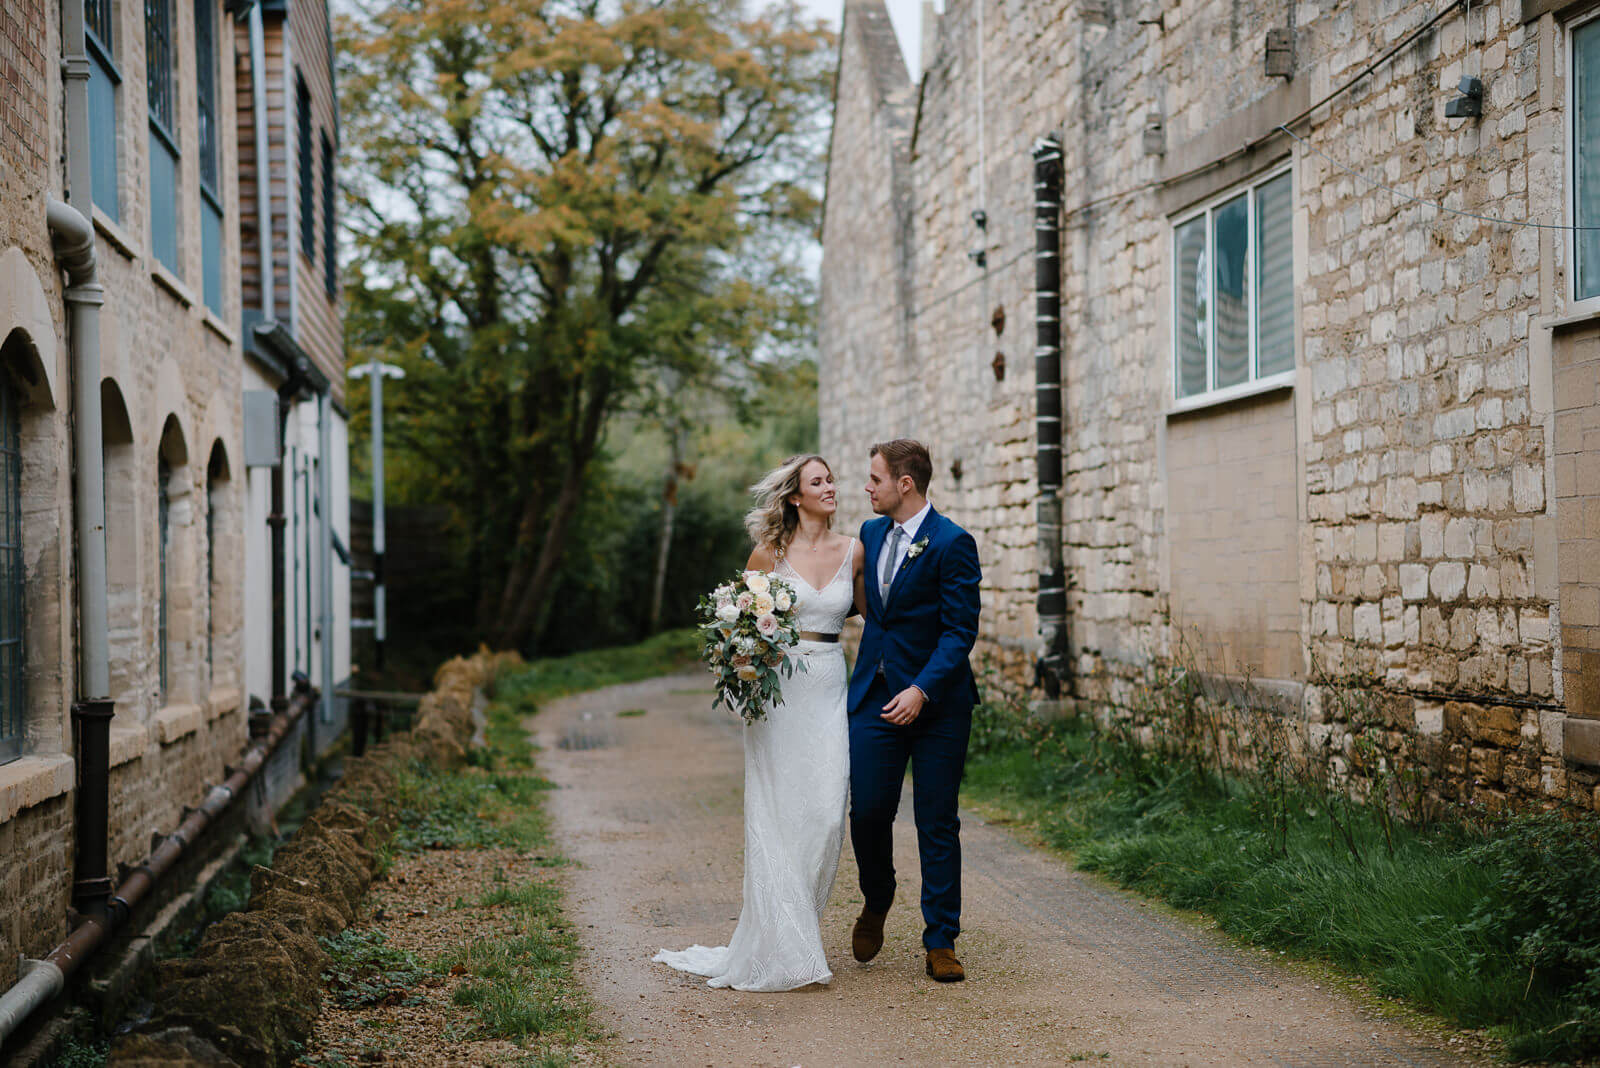 informal portrait of bride and groom as they walk during their Wiltshire wedding at Glove Factory Studios